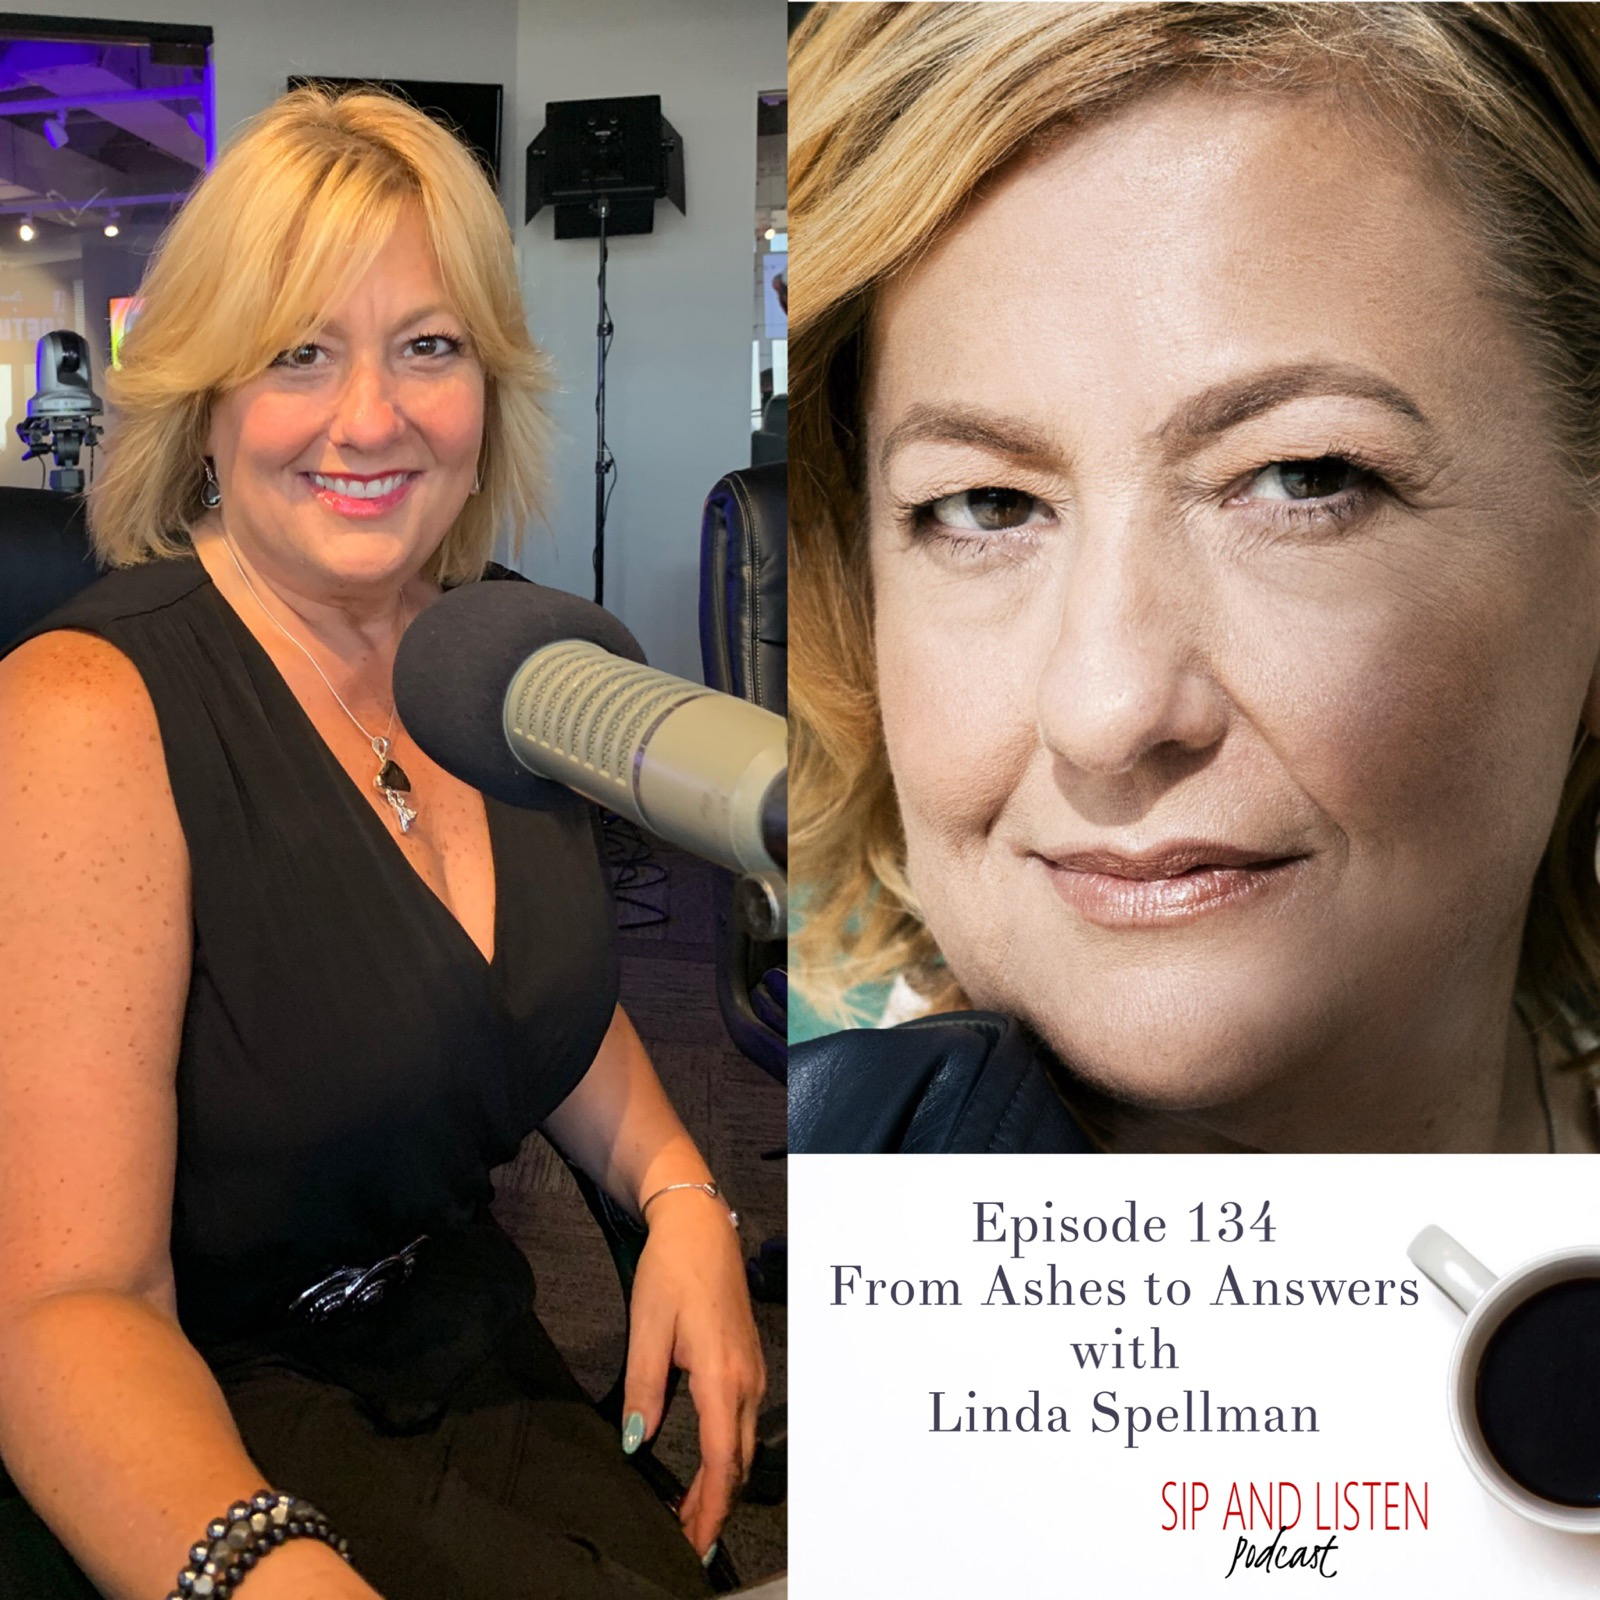 From Ashes to Answers with Linda Spellman